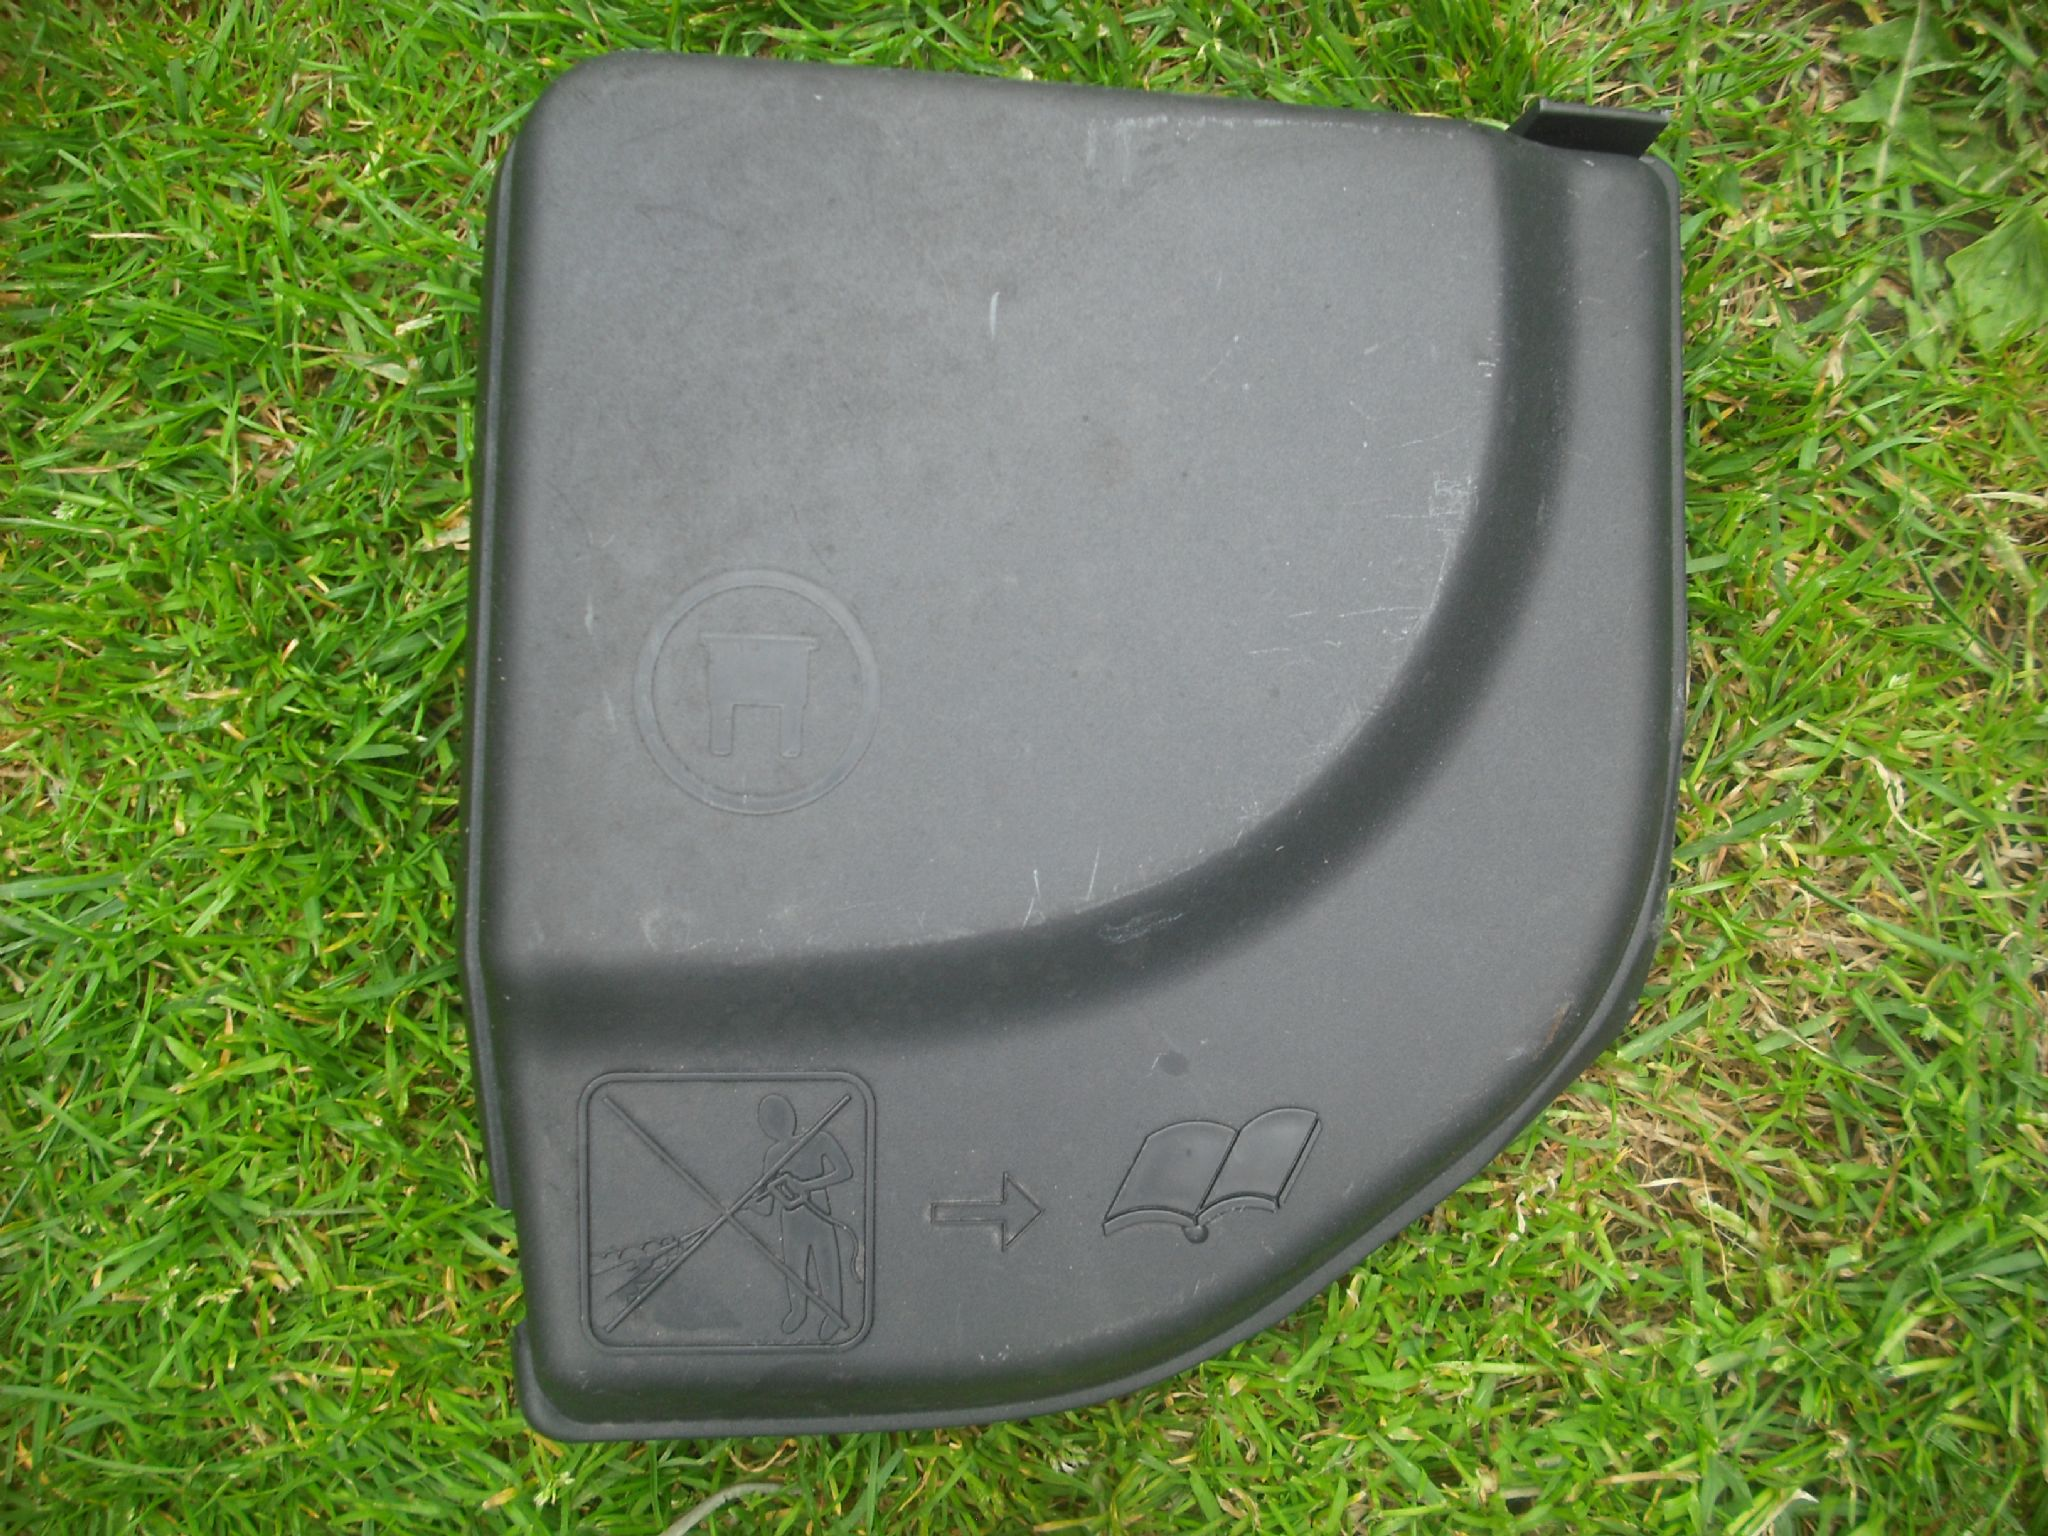 Peugeot 307 Fuse Box For Sale : A genuine peugeot engine bay fuse box cover